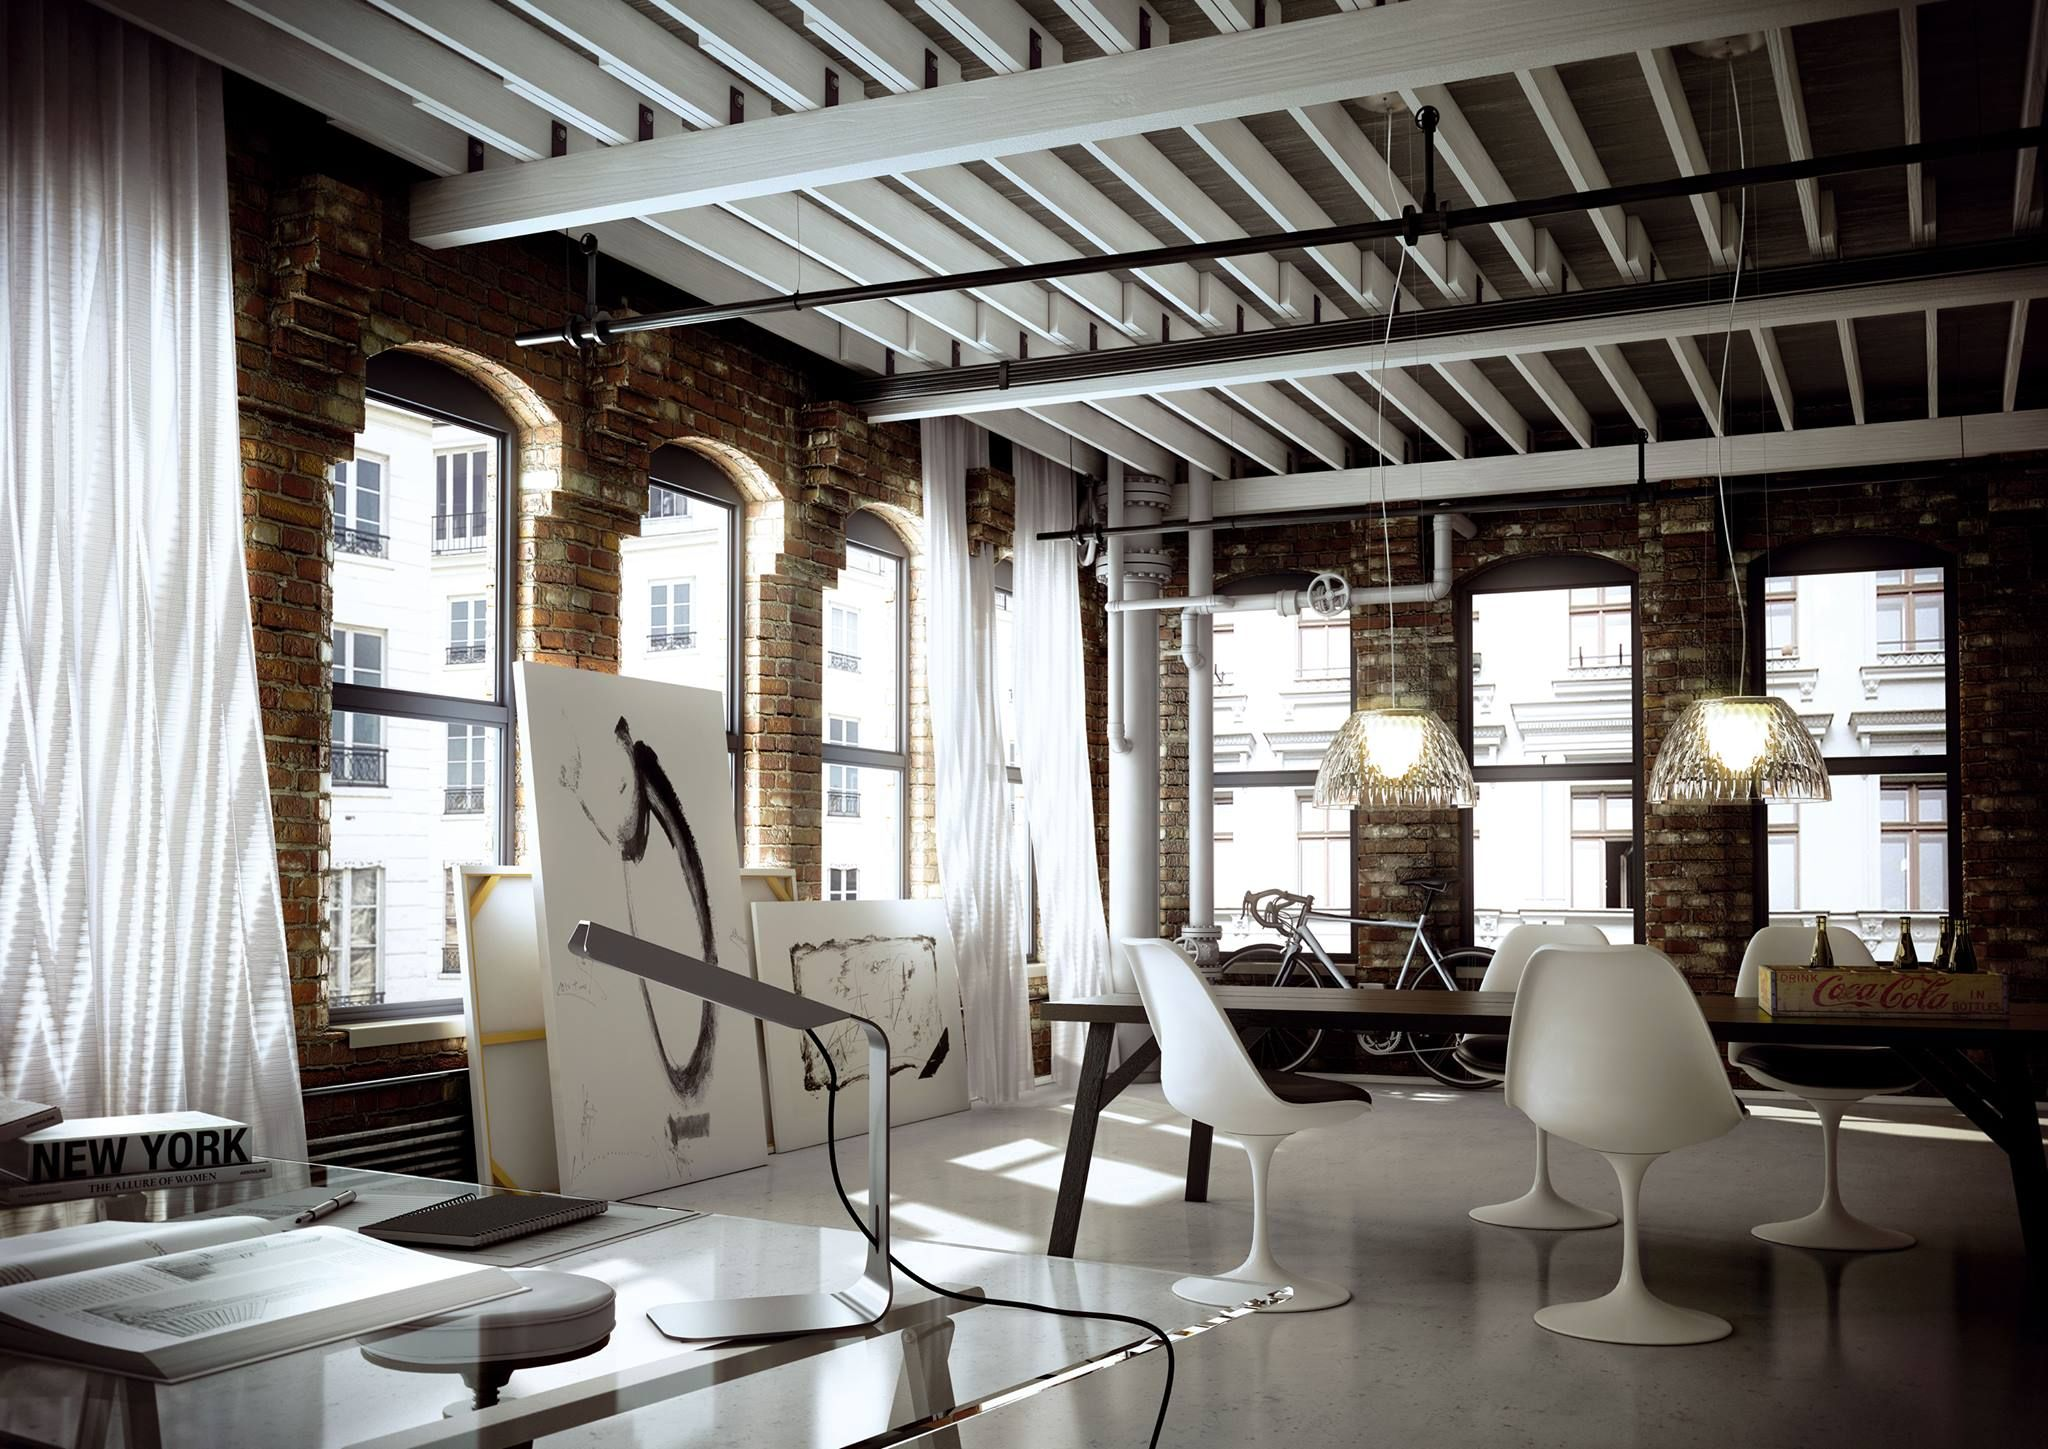 Pin by Smi Ko on INDUSTRIAL | Interior designers in hyderabad